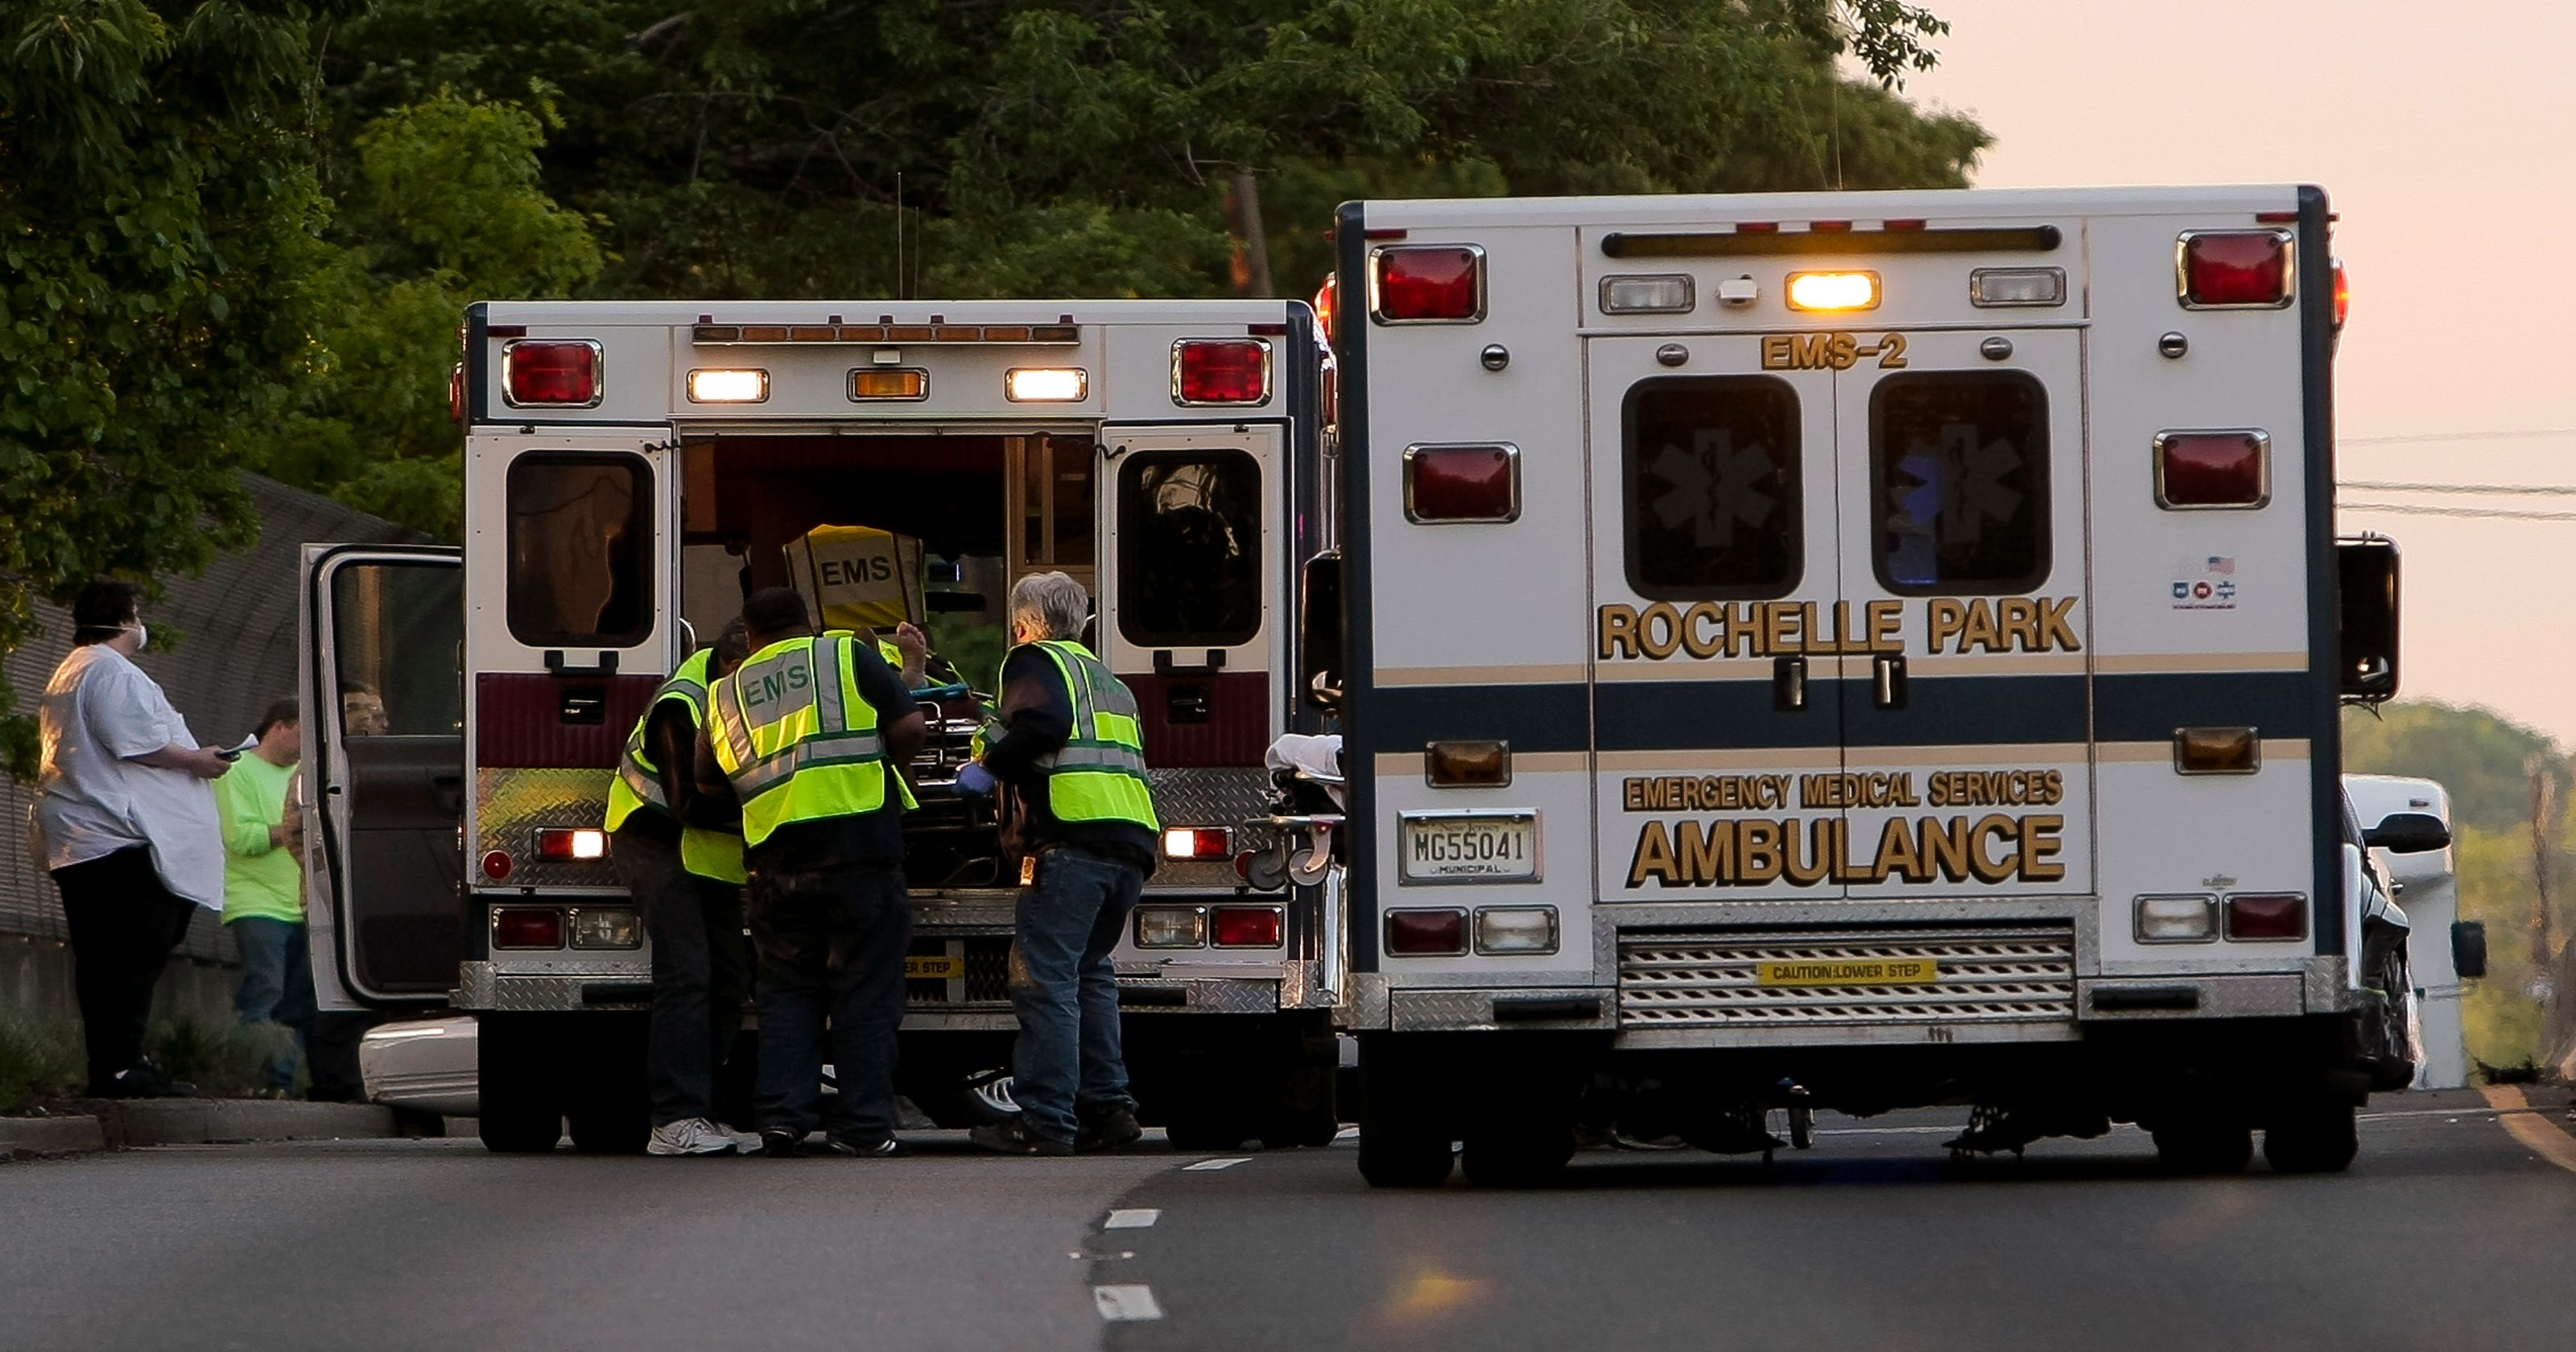 Rochelle Park considers outsourcing EMS service